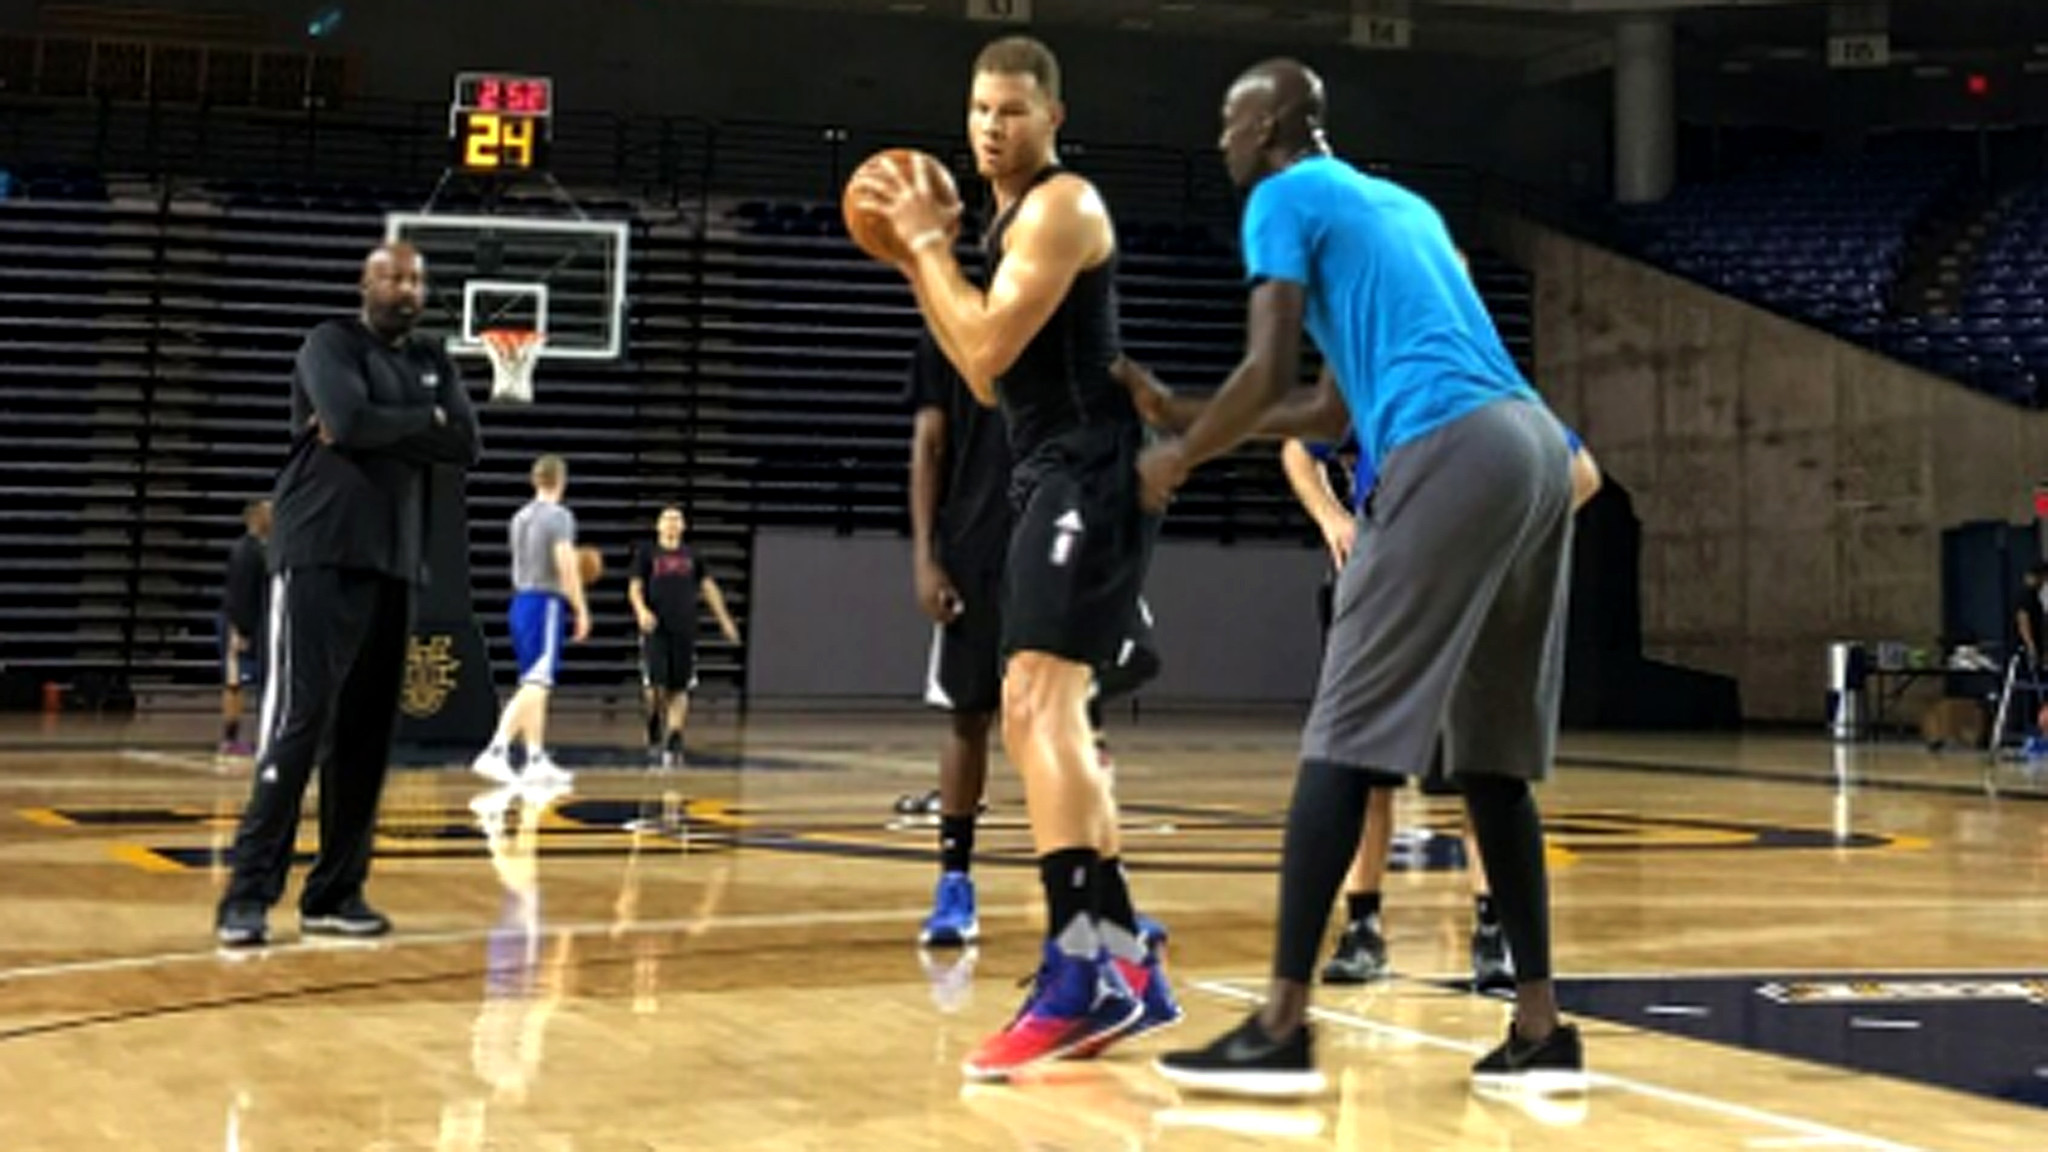 La-sp-clippers-training-camp-20160929-snap